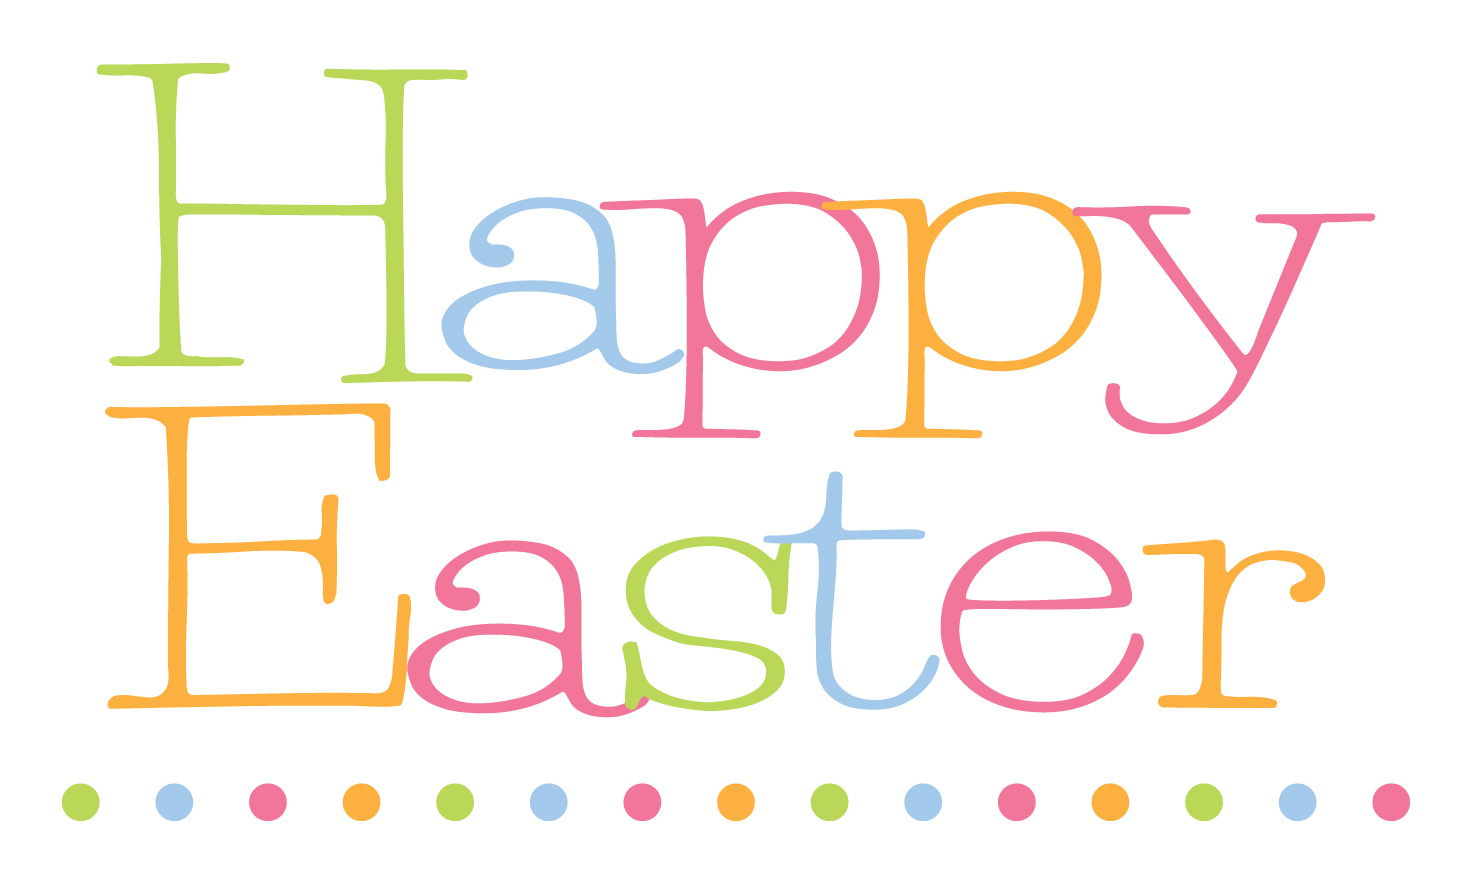 Happy easter clipart religious clipart royalty free religious happy easter clipart_08 - Riverdale Park District clipart royalty free